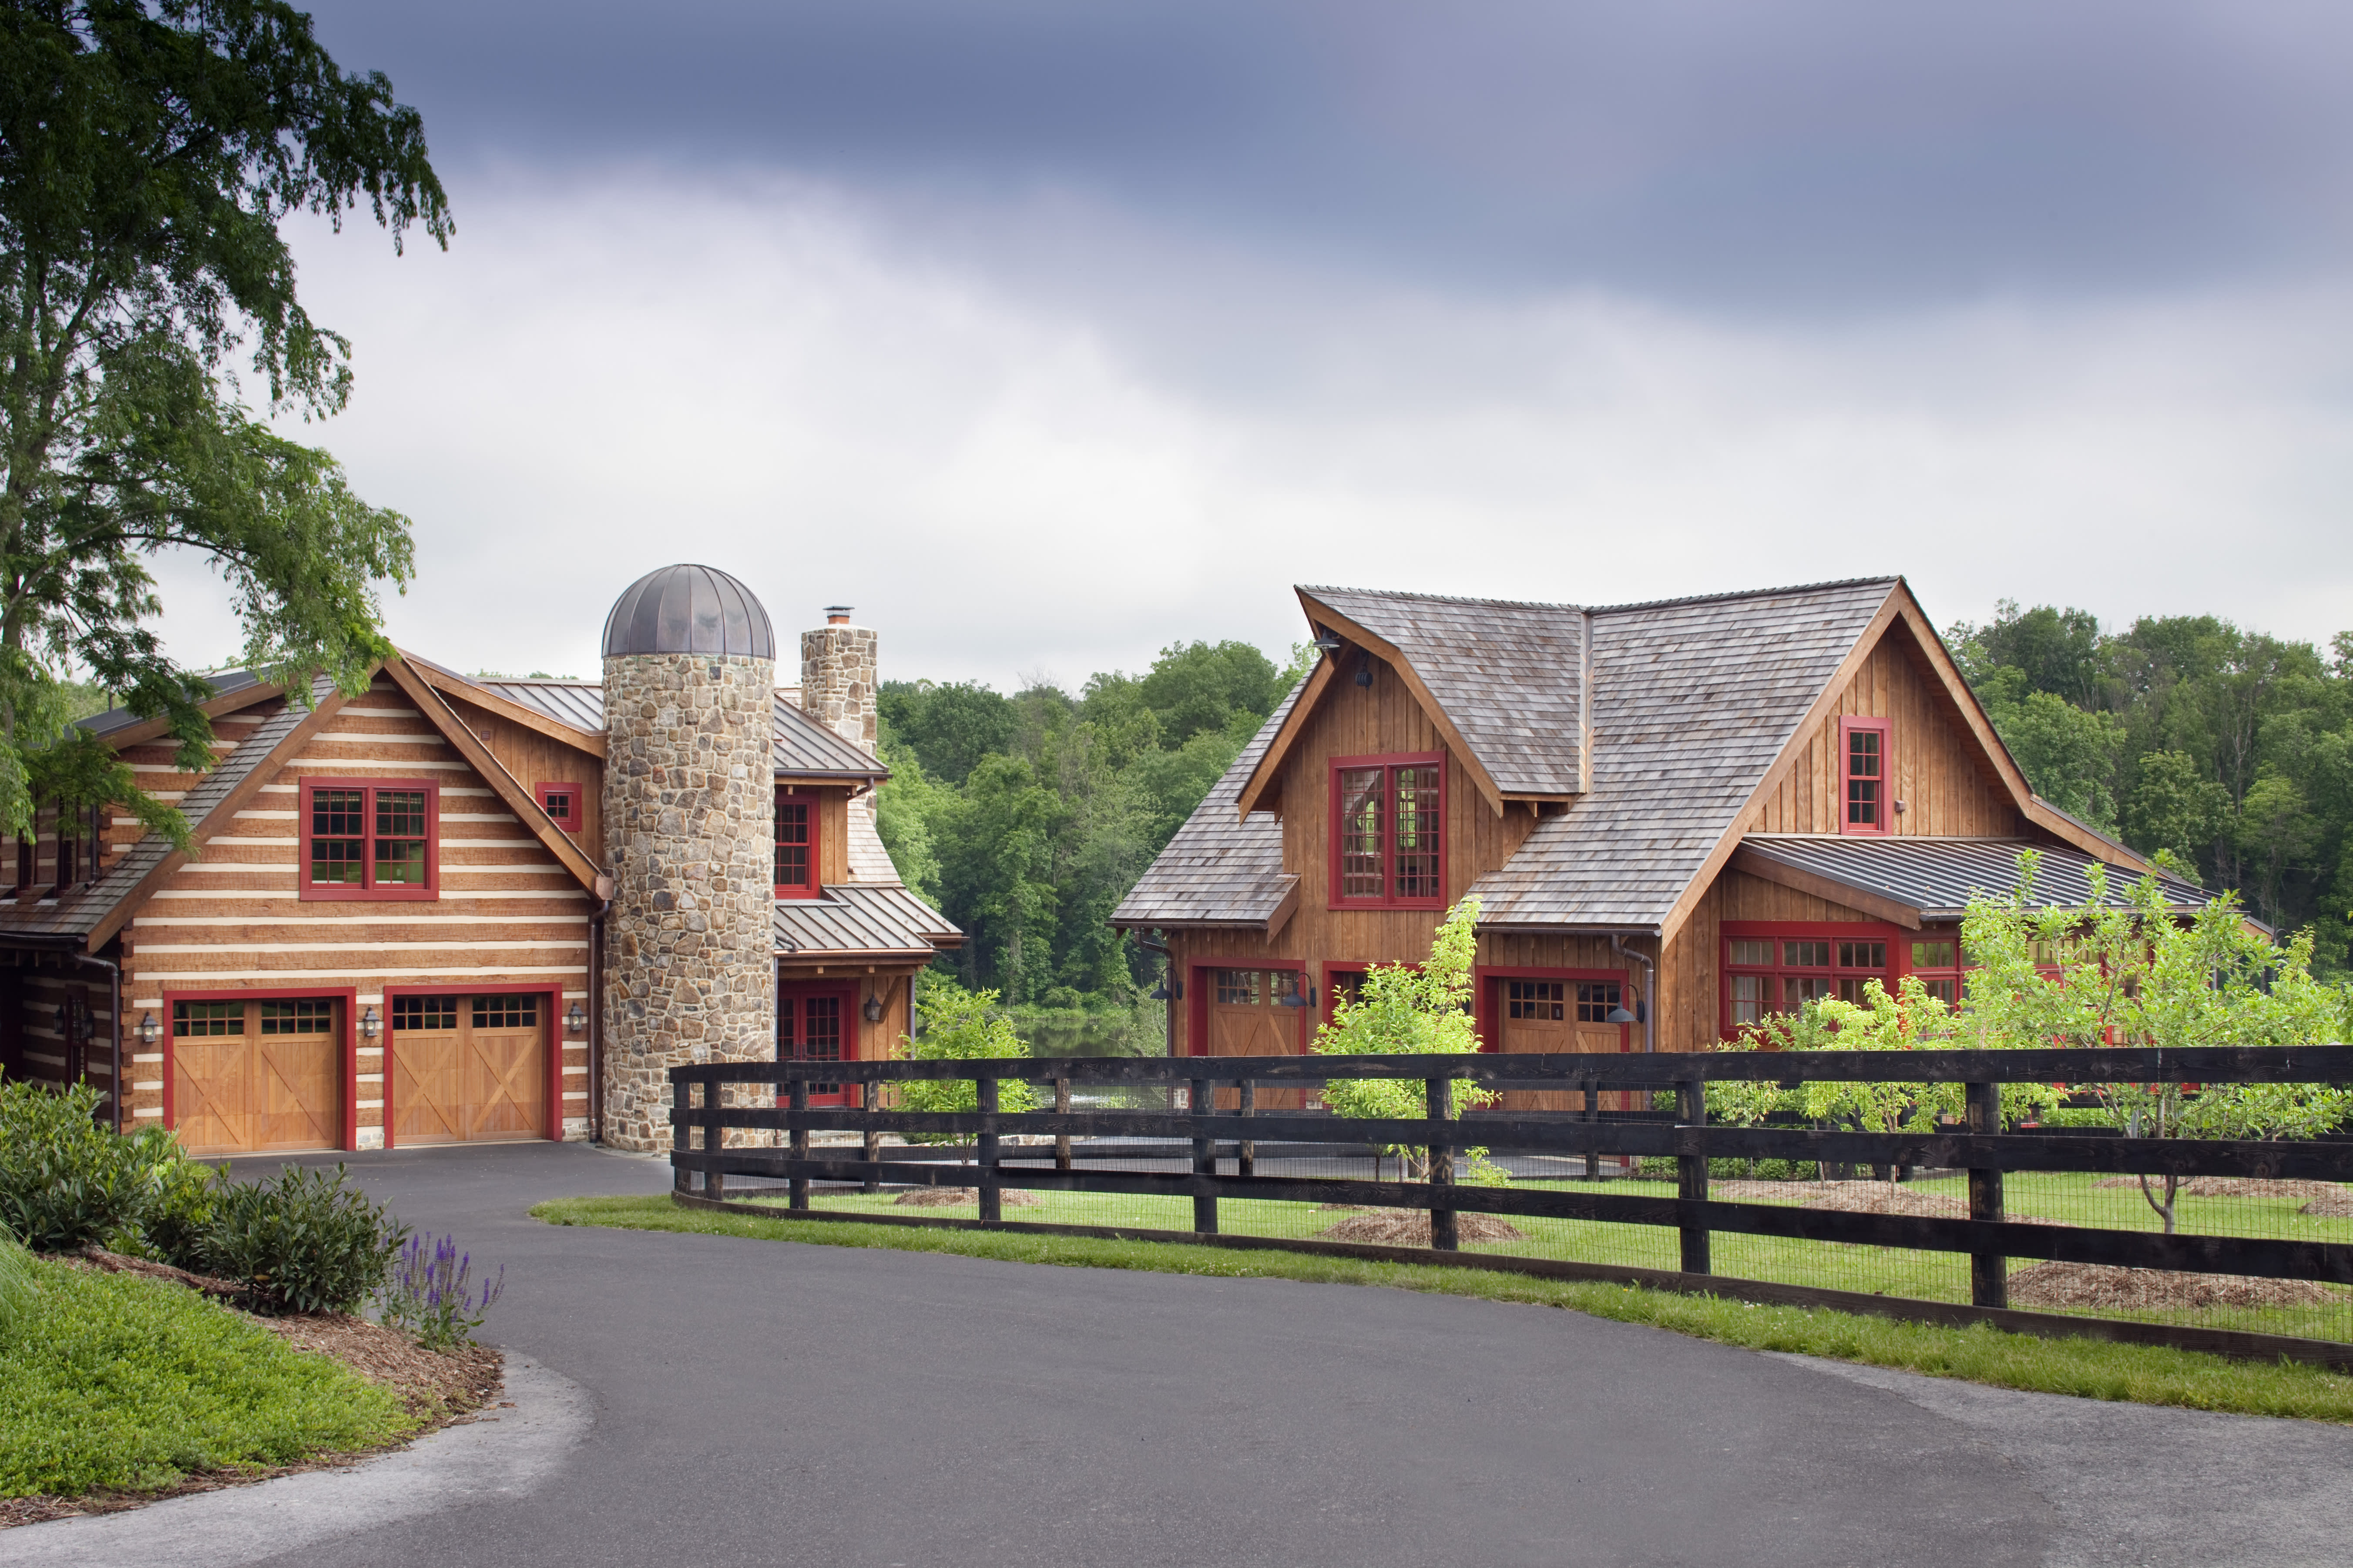 This photo provided by Rill Architects shows detached garages in Emmitsburg, Md. Detached garages with a second floor, as seen in this project designed by the Bethesda, Md. based firm Rill Architects, can serve as a space to store cars while also pulling double-duty as guest suites, rooms for crafting or even a playroom for children. (James Ray Spahn/Rill Architects via AP)